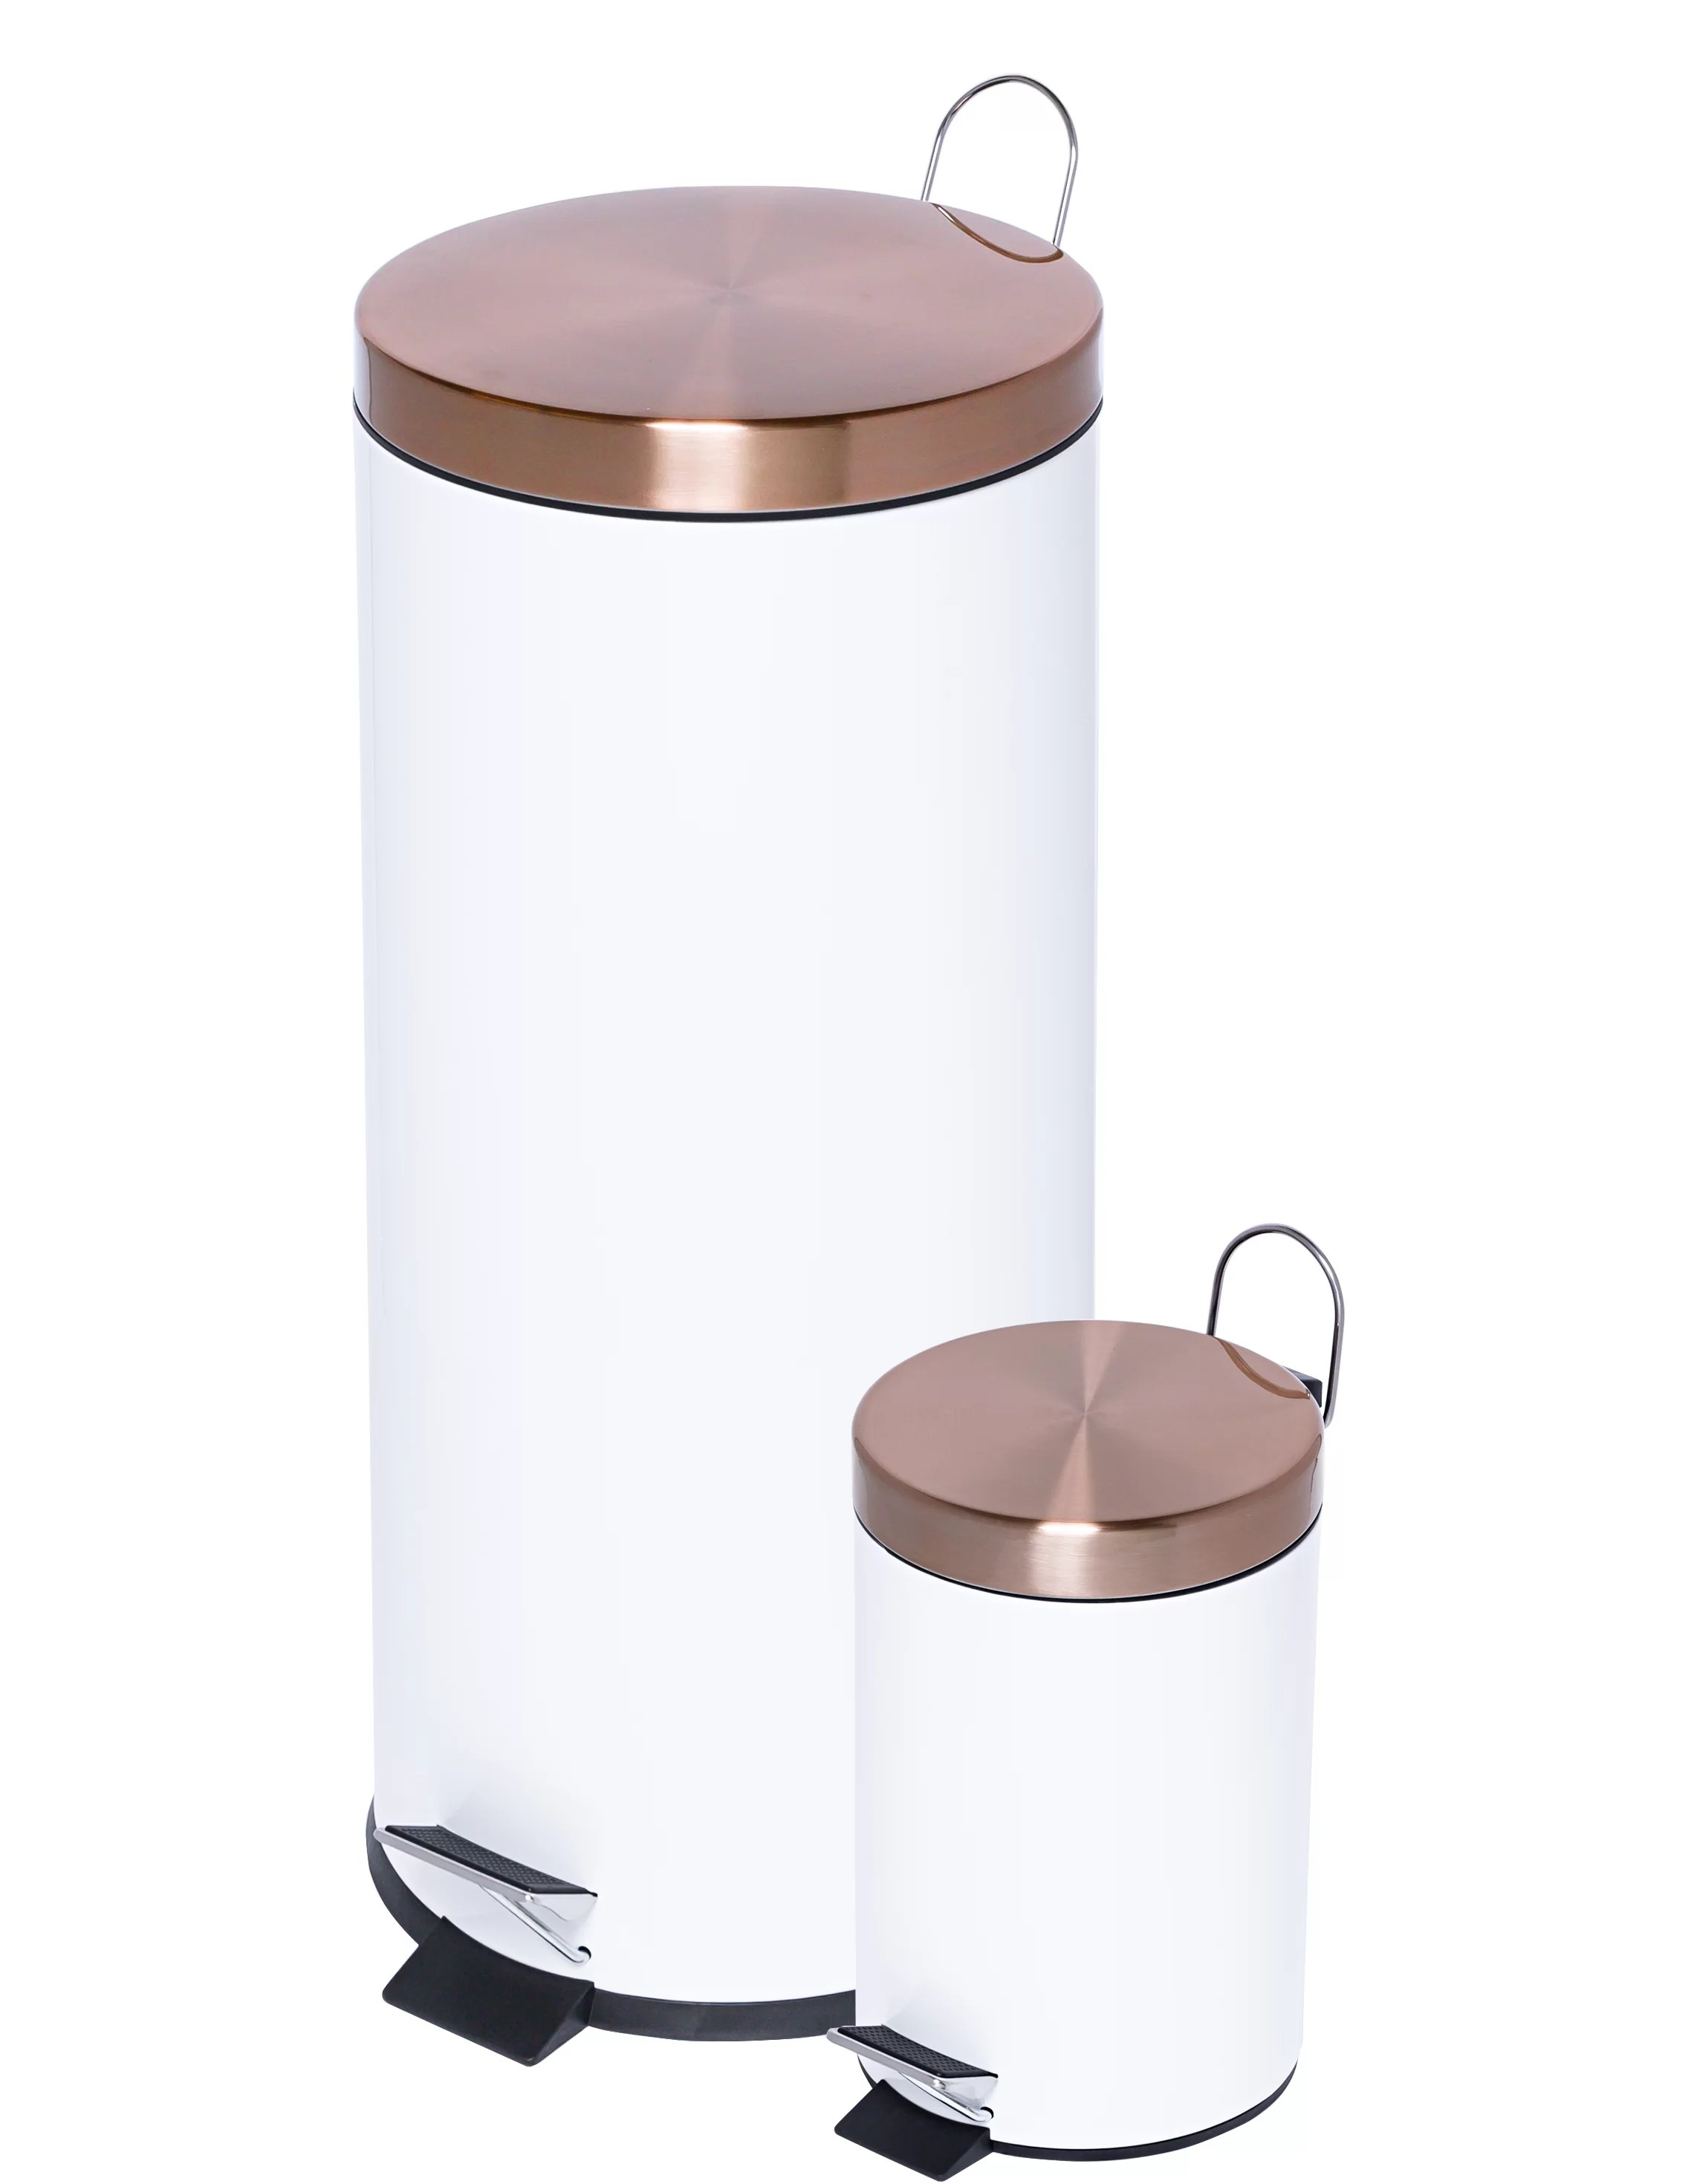 Copper Trash Can With Lid 2 Piece Round Step On Trash Can Set